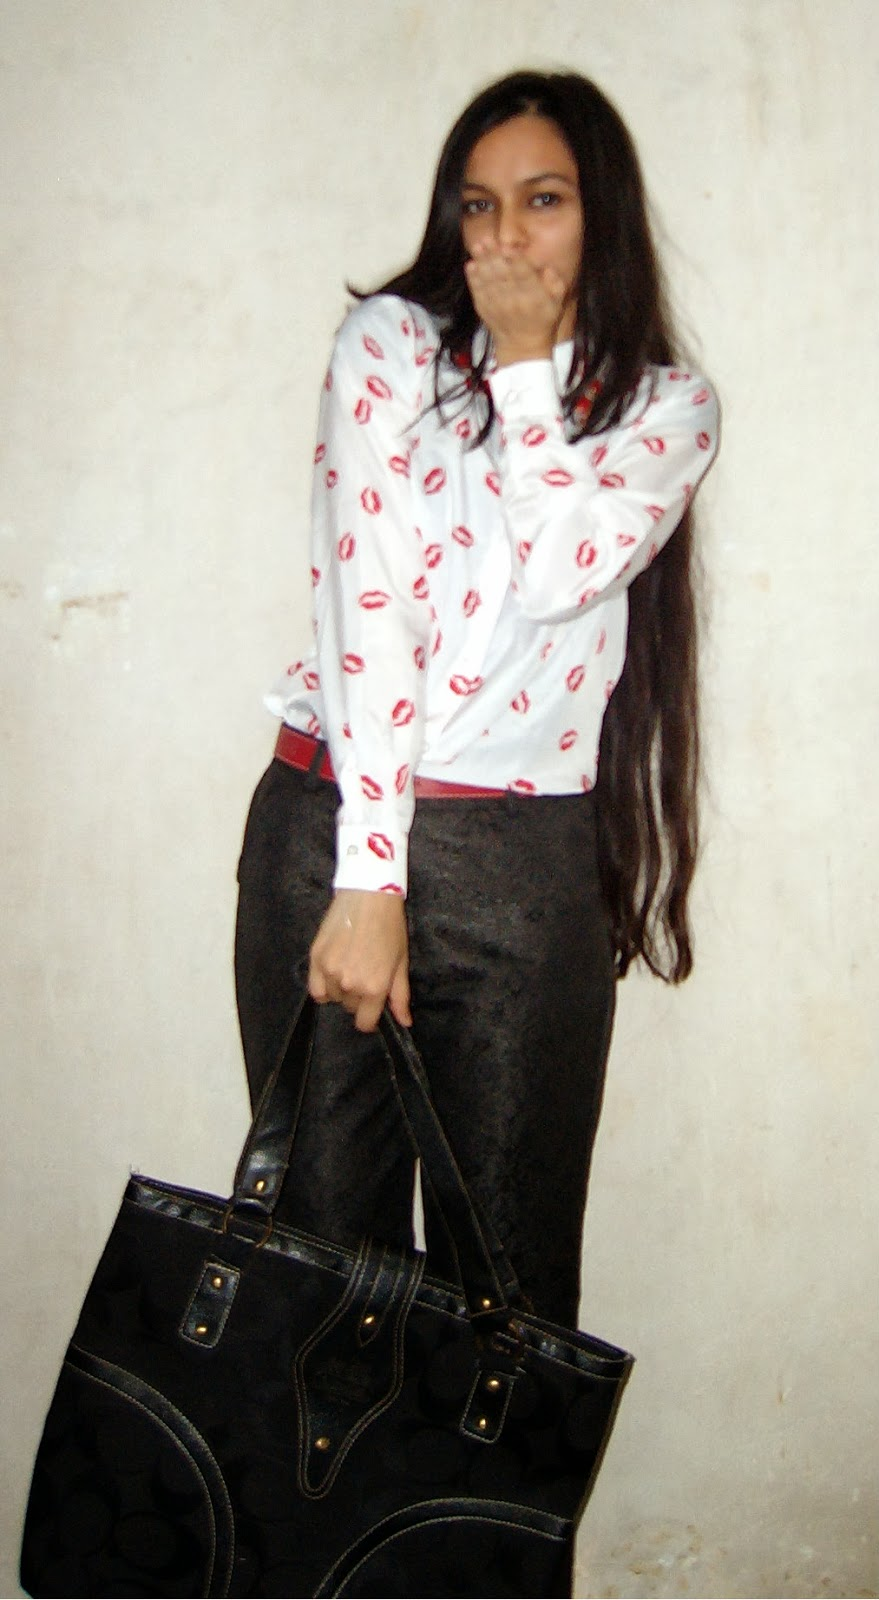 mumbai fashion blogger, how to wear quirky prints, lipstick print shirt, fashion trends in mumbai, statement jewellery